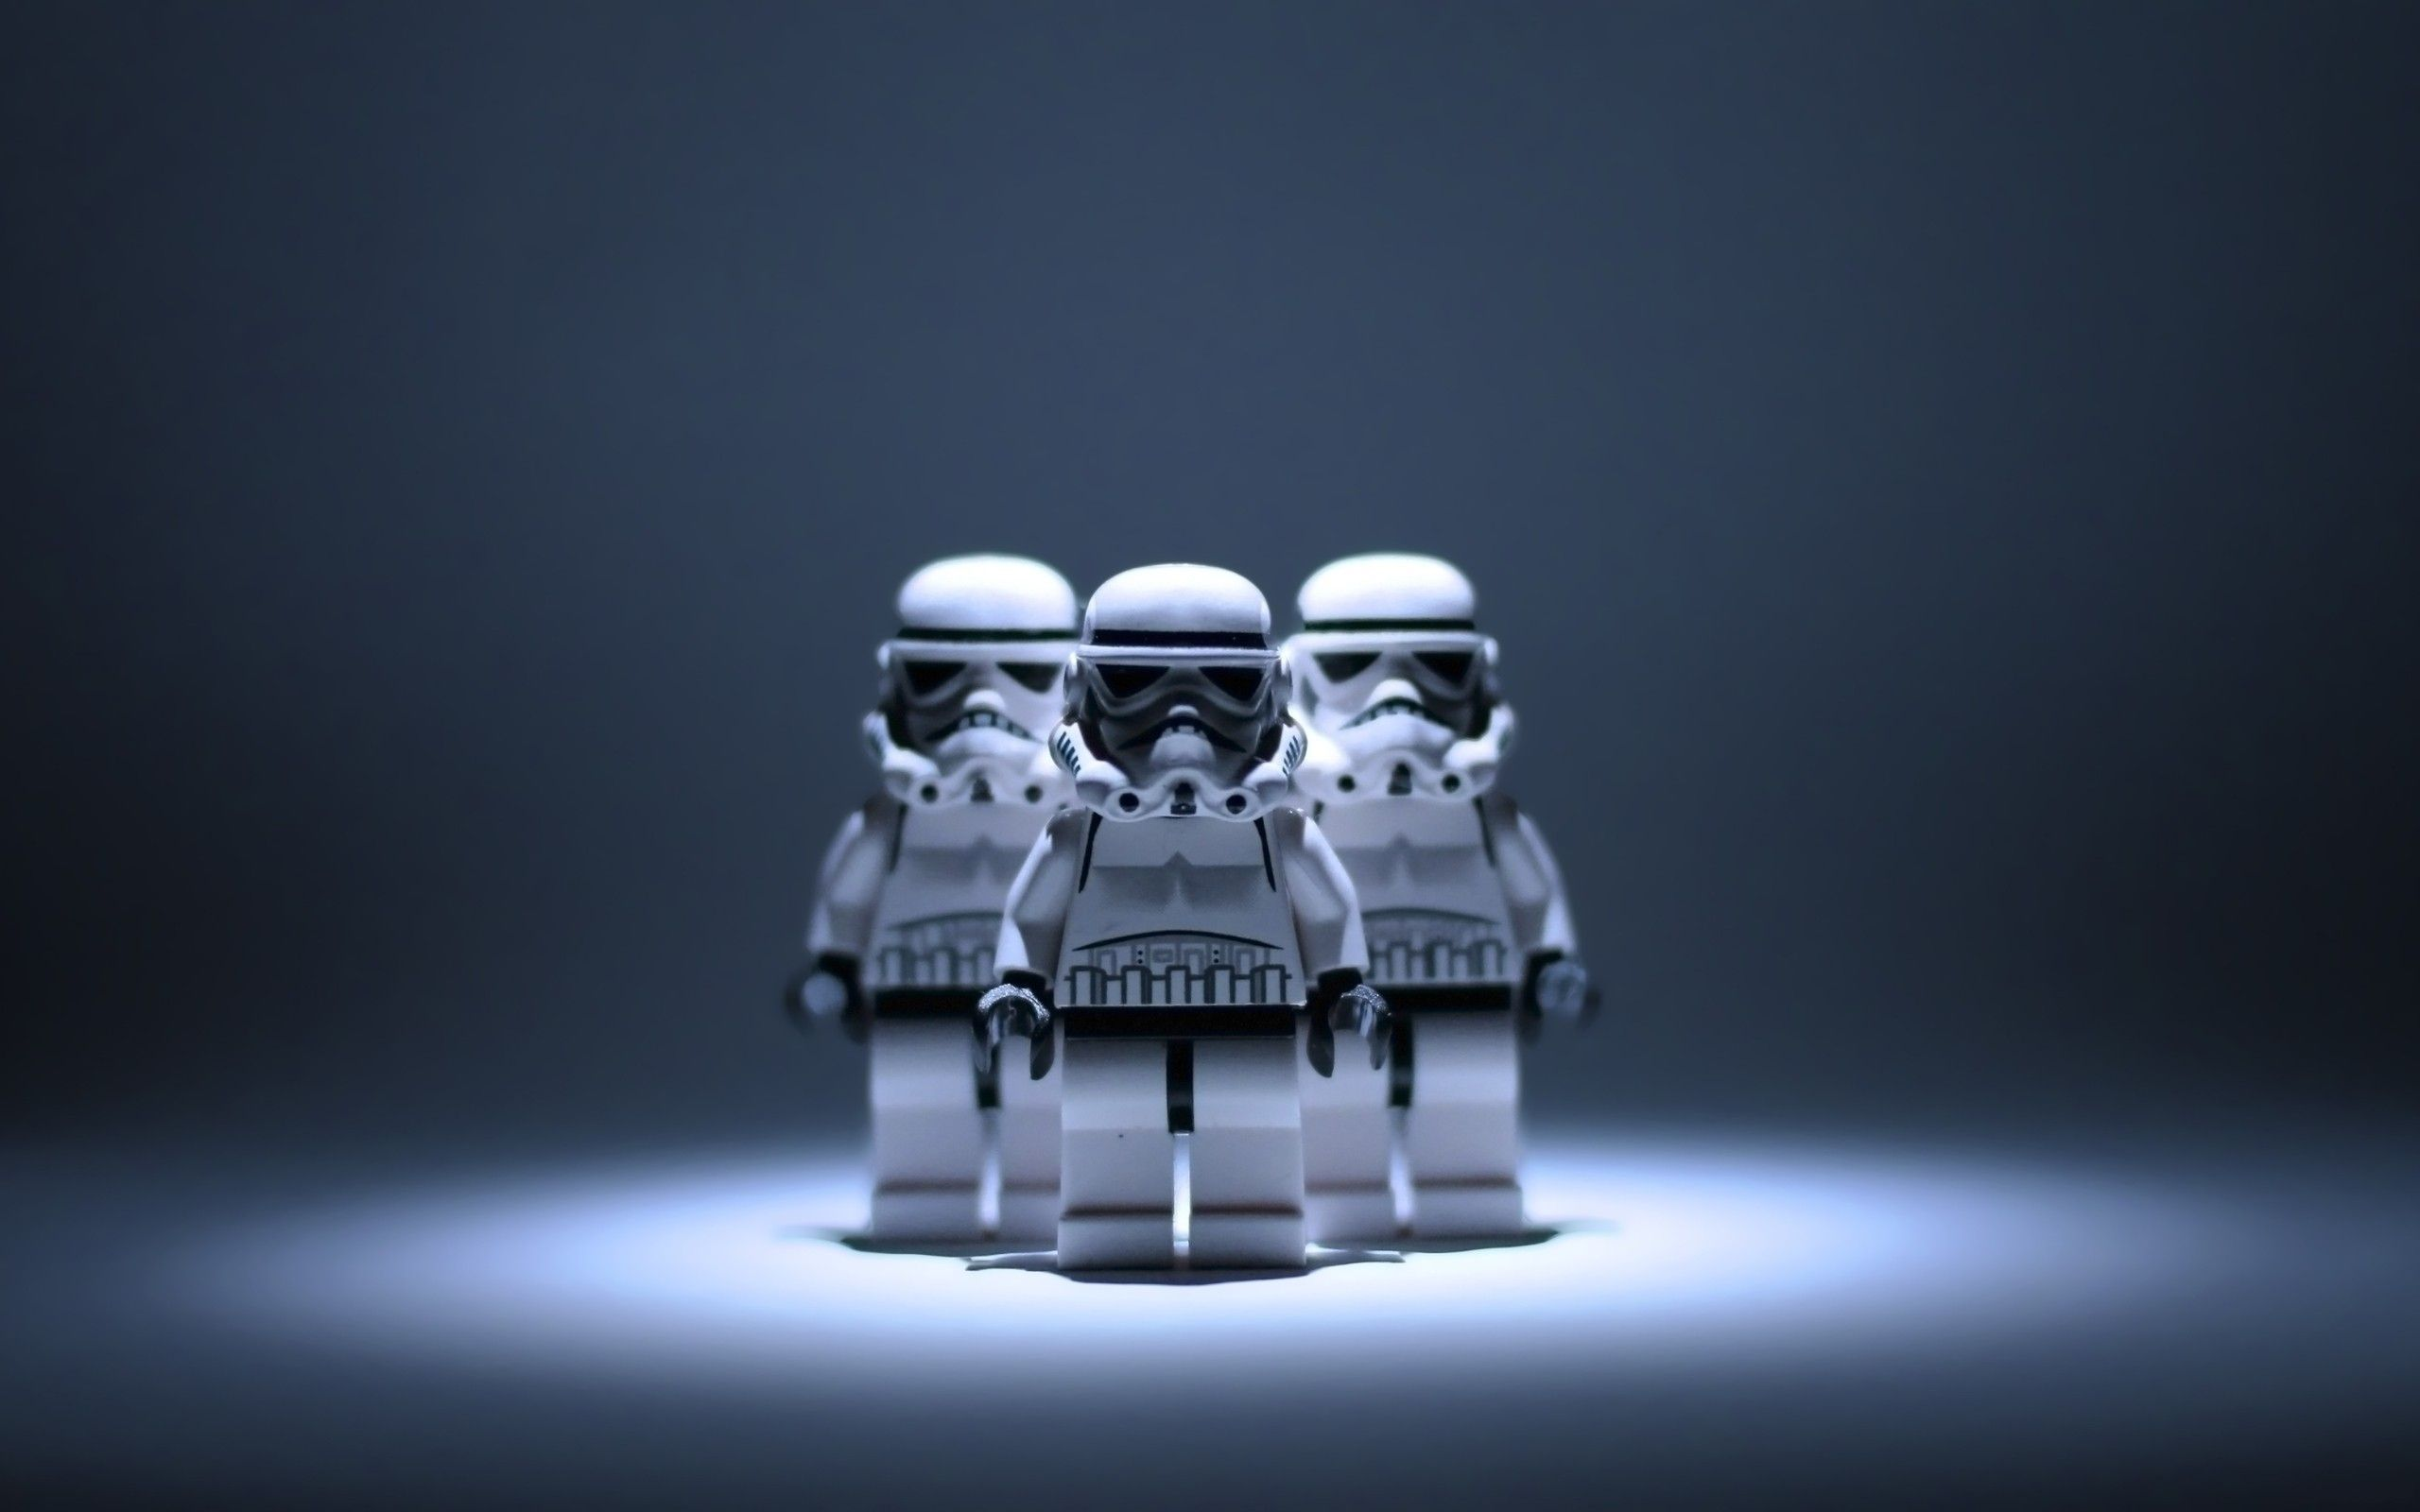 Lego Star Wars Wallpapers High Quality Free Download Lego